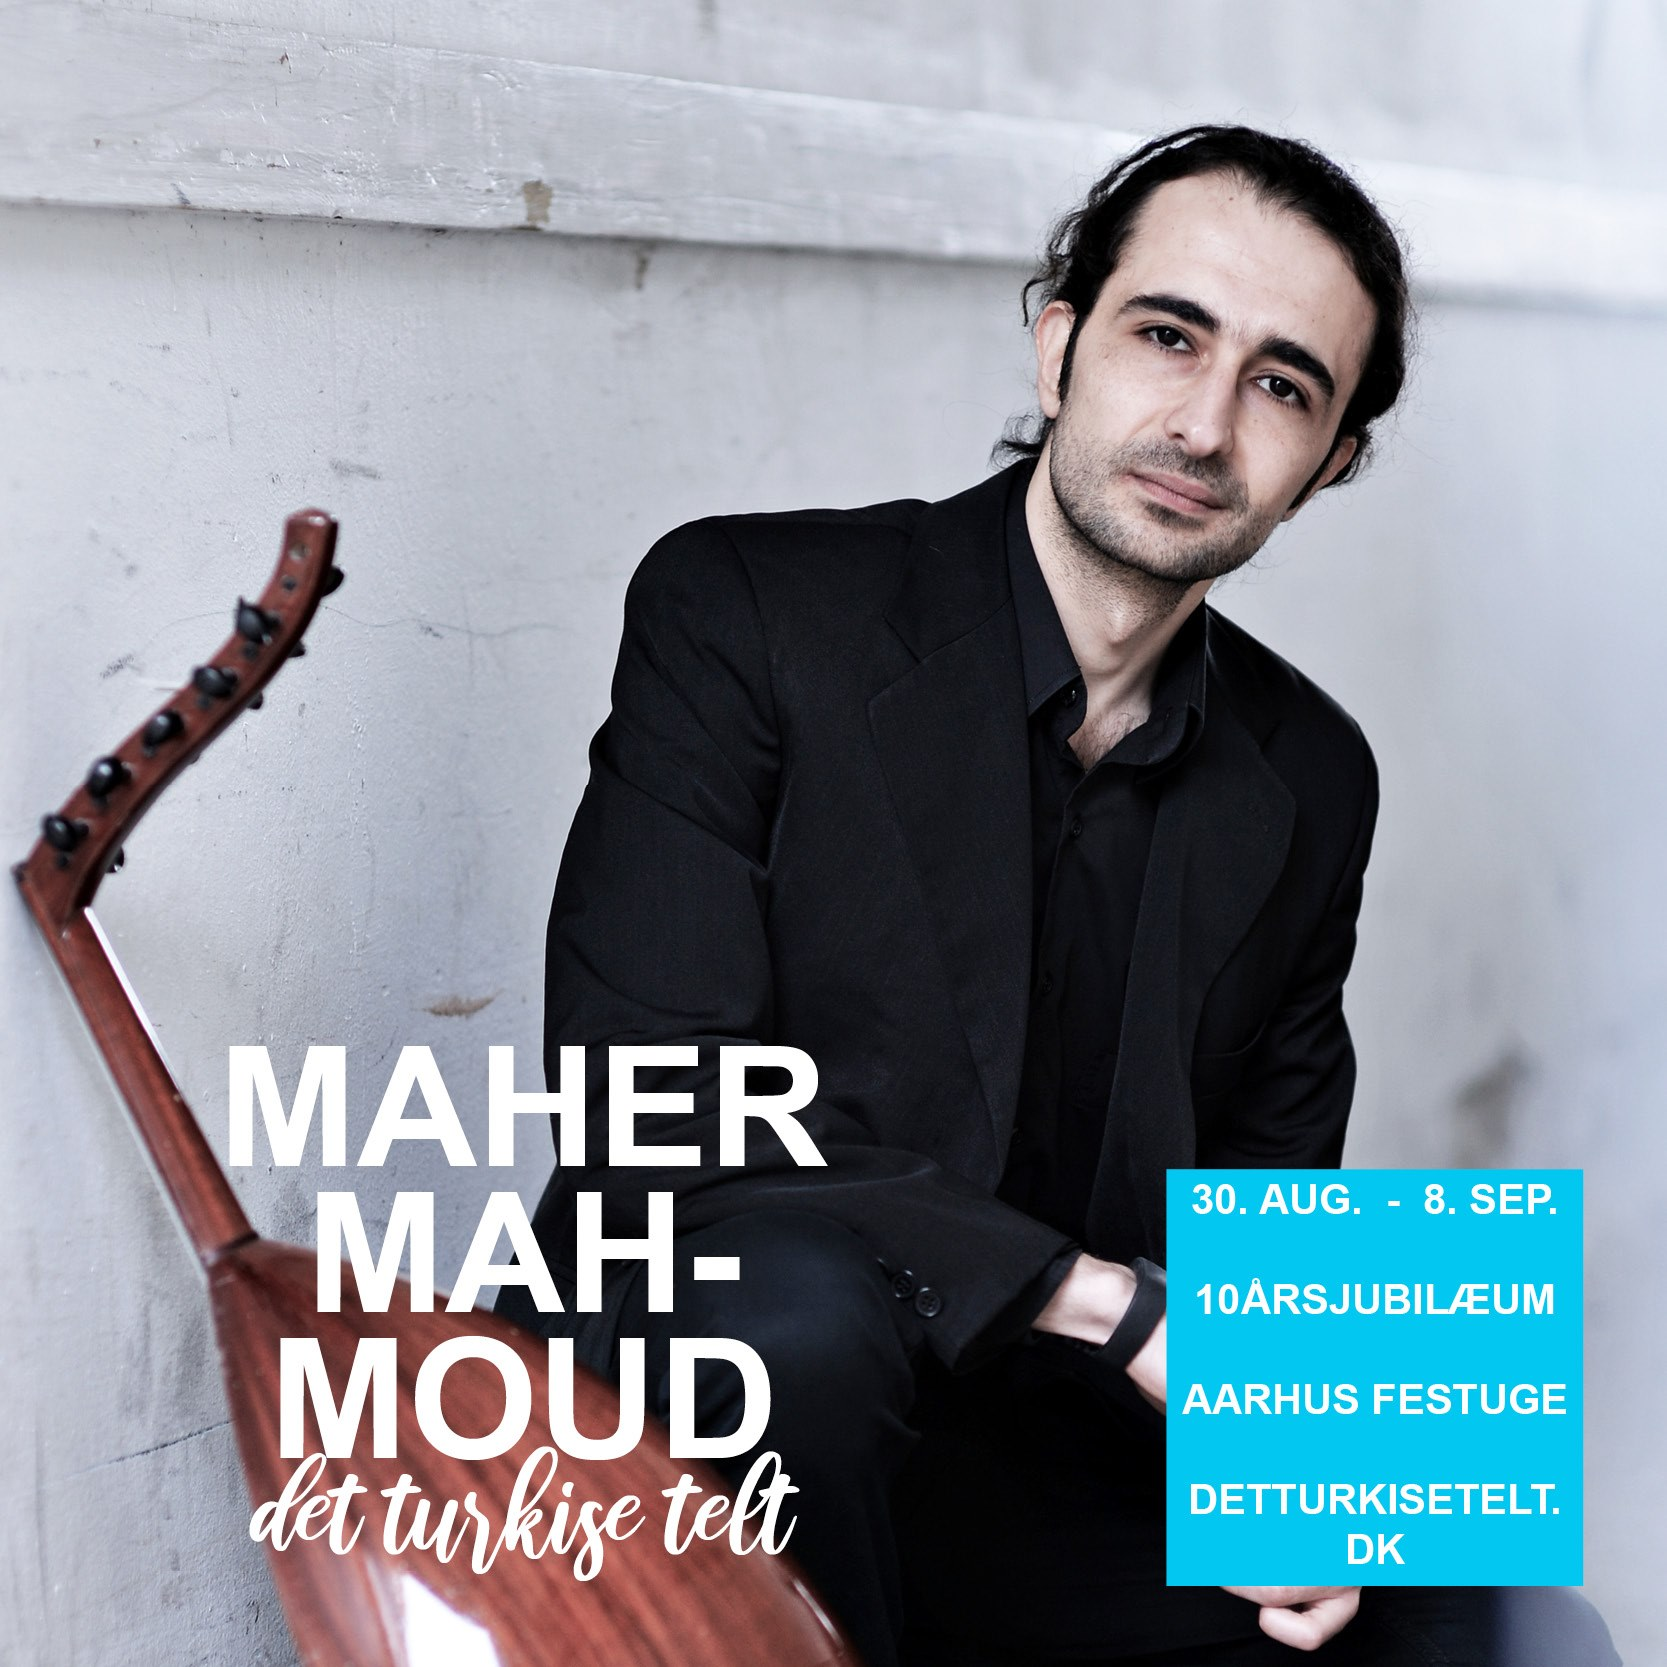 Oud Solo Concert - Syrian Oud master performs Arabic traditional music with a solo concertAn incredibly accomplished musician is once again visiting the turquoise tent. Maher Mahmoud has been playing music since he was only six years old, and it flows not only from every note he strikes, but also from his long list of musical achievements.. Diplomas from music academies in both Damascus and Aarhus, interaction with big bands, symphony orchestras, jazz musicians and other equilibrists, masterful skills in both classical and folk music and recognized as both composer and arranger. Now Maher Mahmoud is retiring in his well-known role as a solo artist, inviting the audience to experience Arabic music very closely with both traditional pieces and his own compositions. With a guarantee a beautiful and healing experience awaits.Maher Mahmoud plays in the turquoise tent on Thursday, September 5 at 6 p.m.